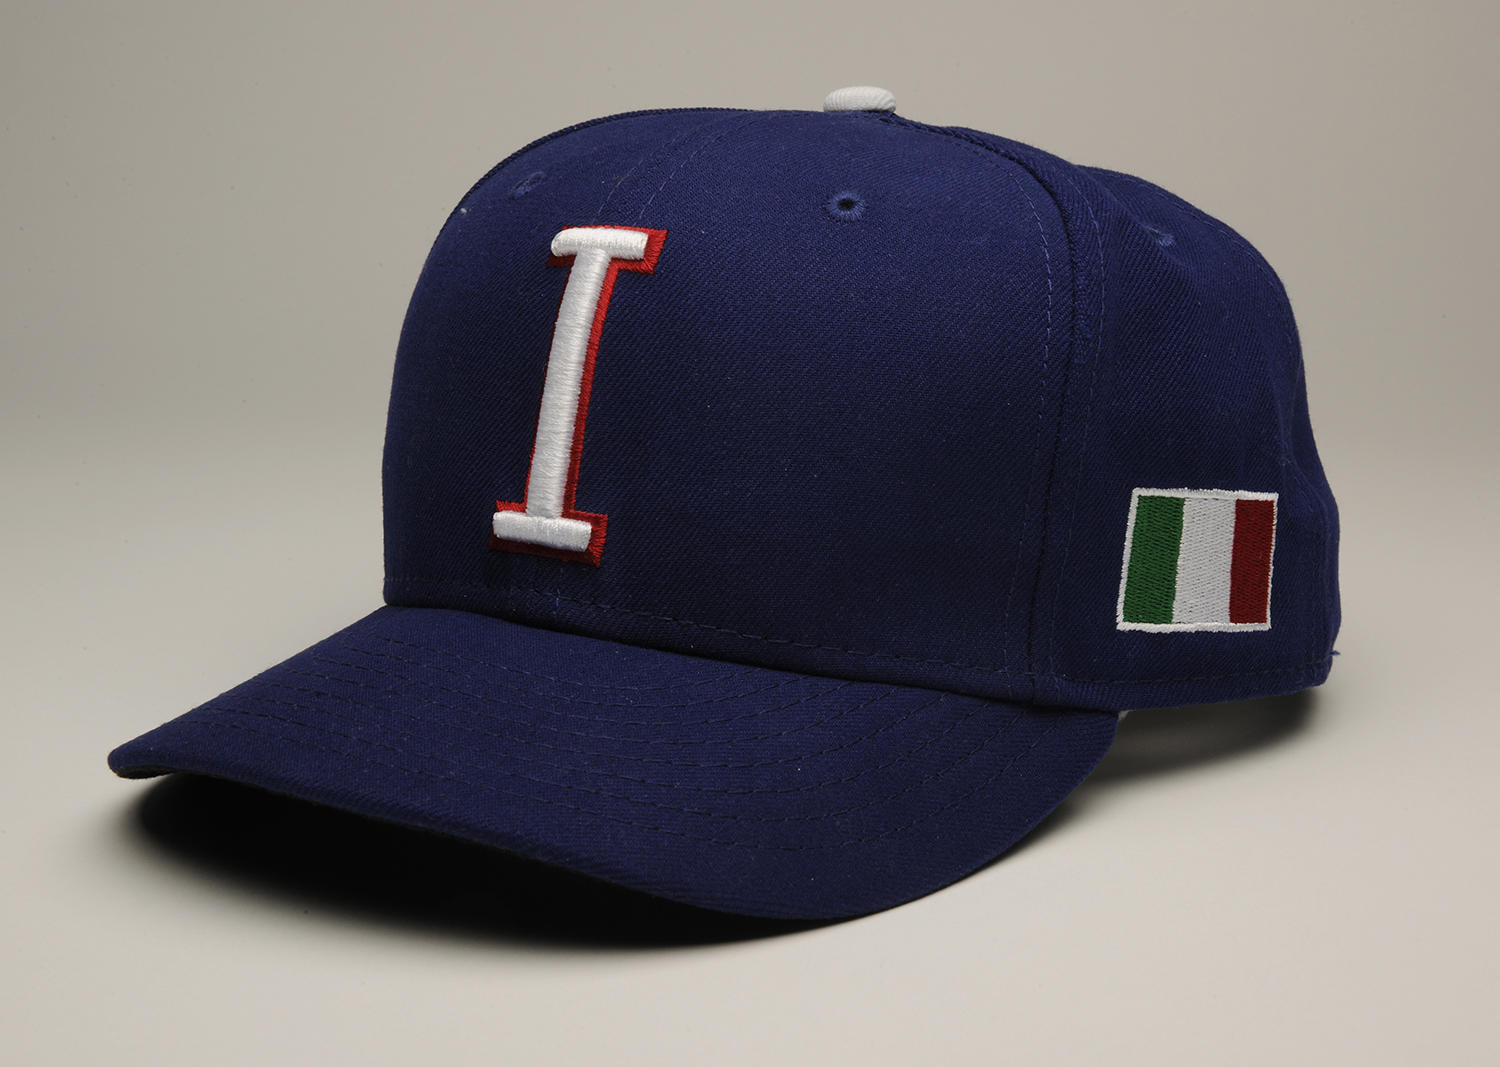 Mike Piazza donned this hat for Team Italy when he served as their batting coach in the 2013 World Baseball Classic. (Milo Stewart Jr. / National Baseball Hall of Fame)